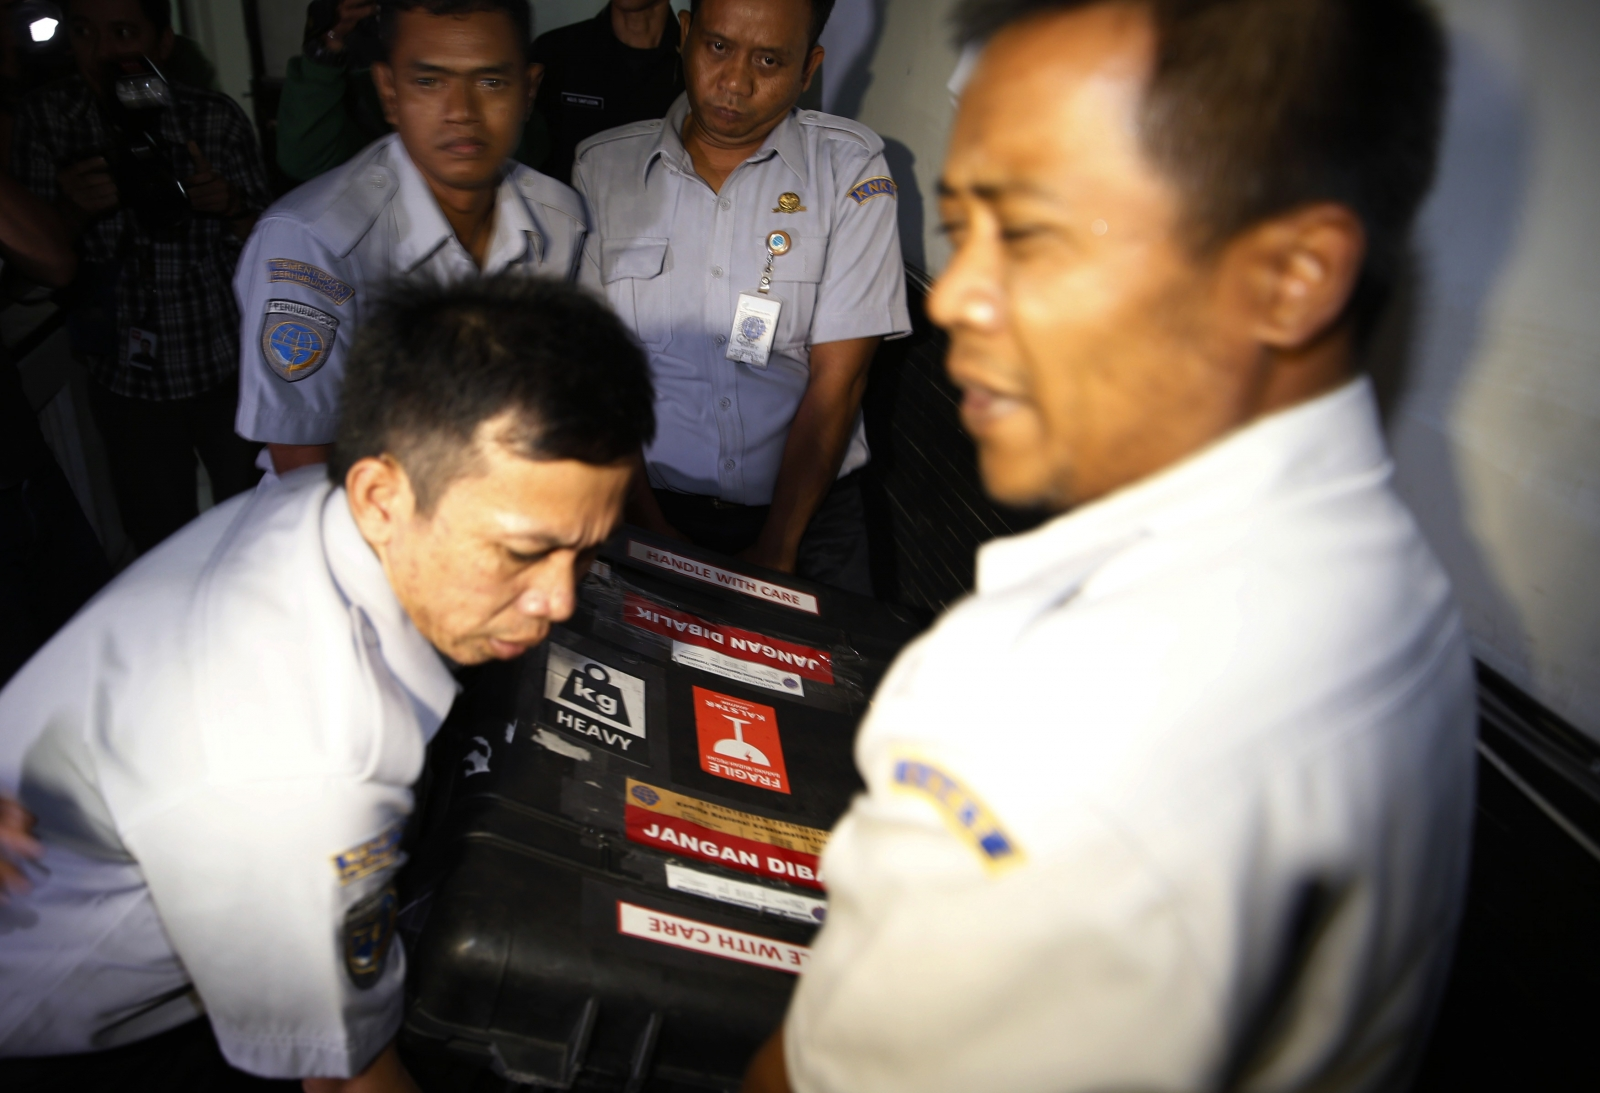 Investigator believes crashed AirAsia's in good condition